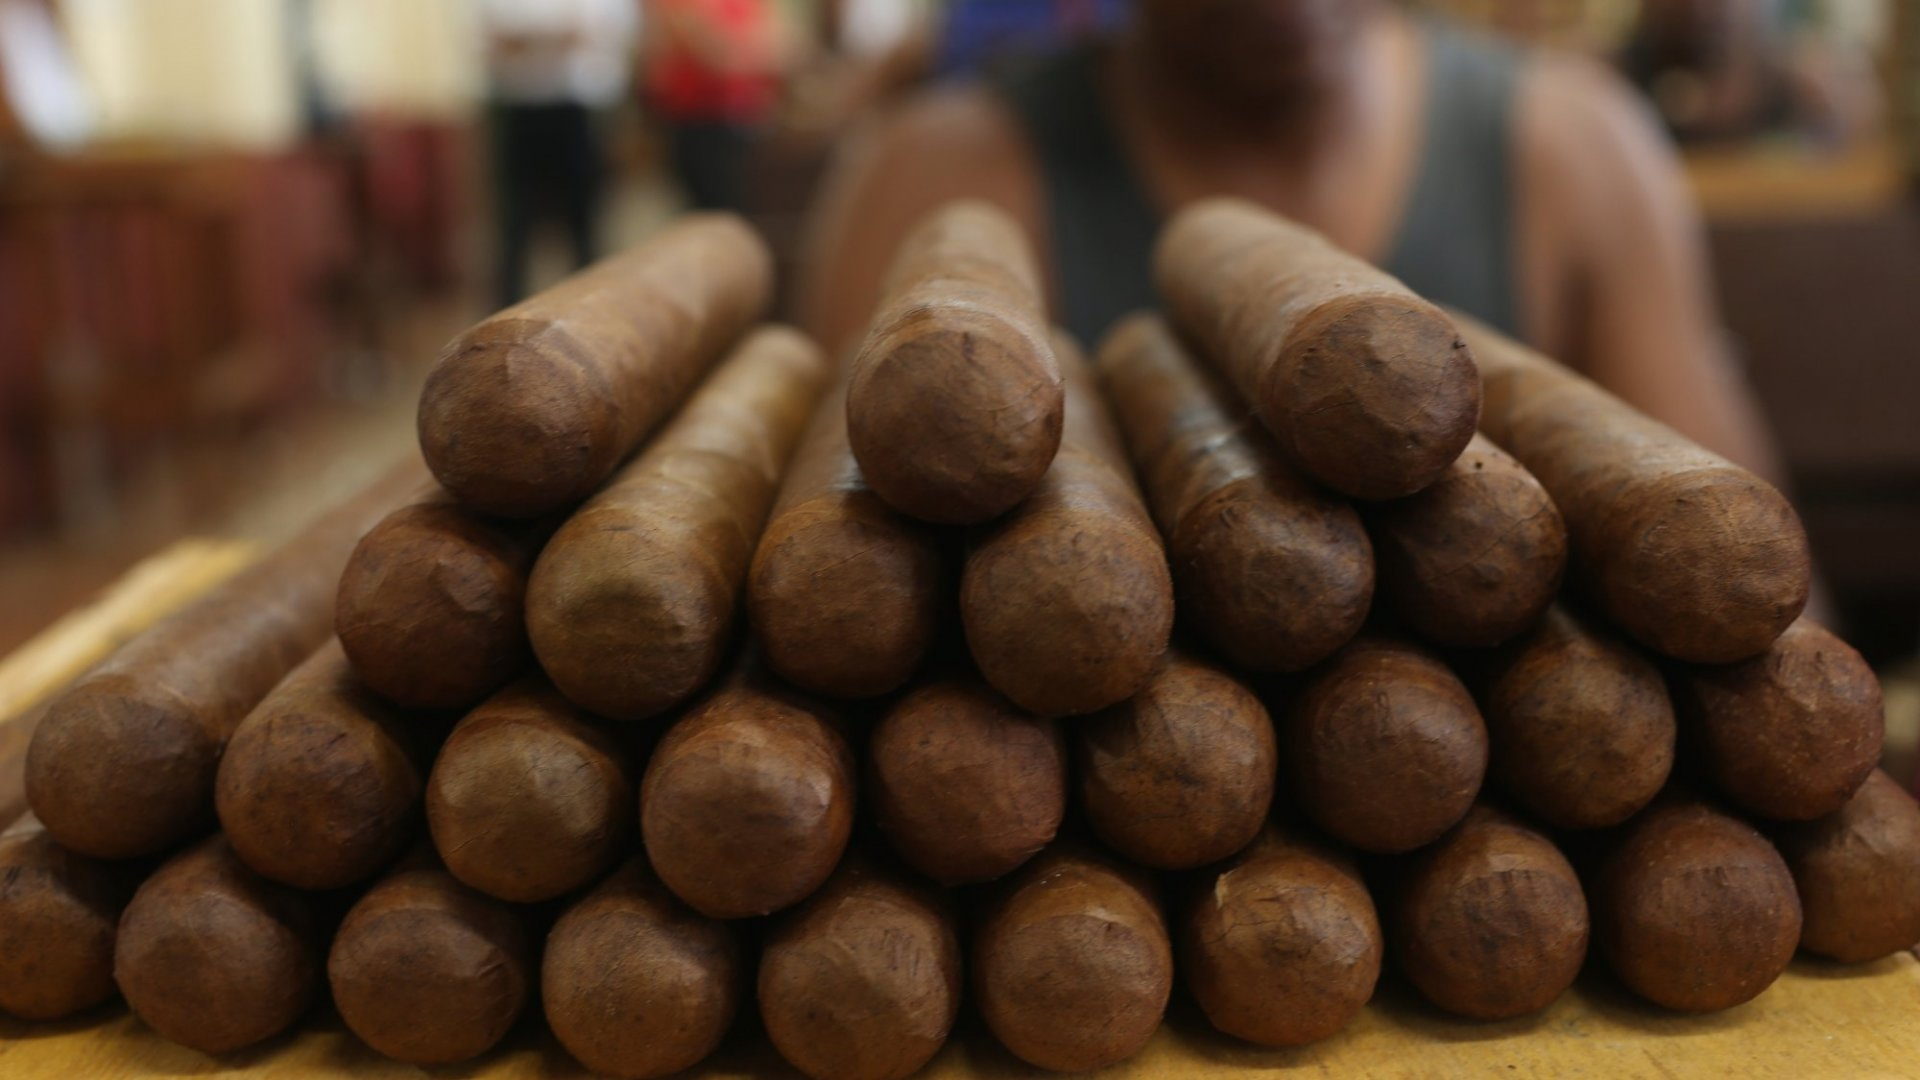 Cuban Cigars Can Now Come to U.S. Will Anyone Care?